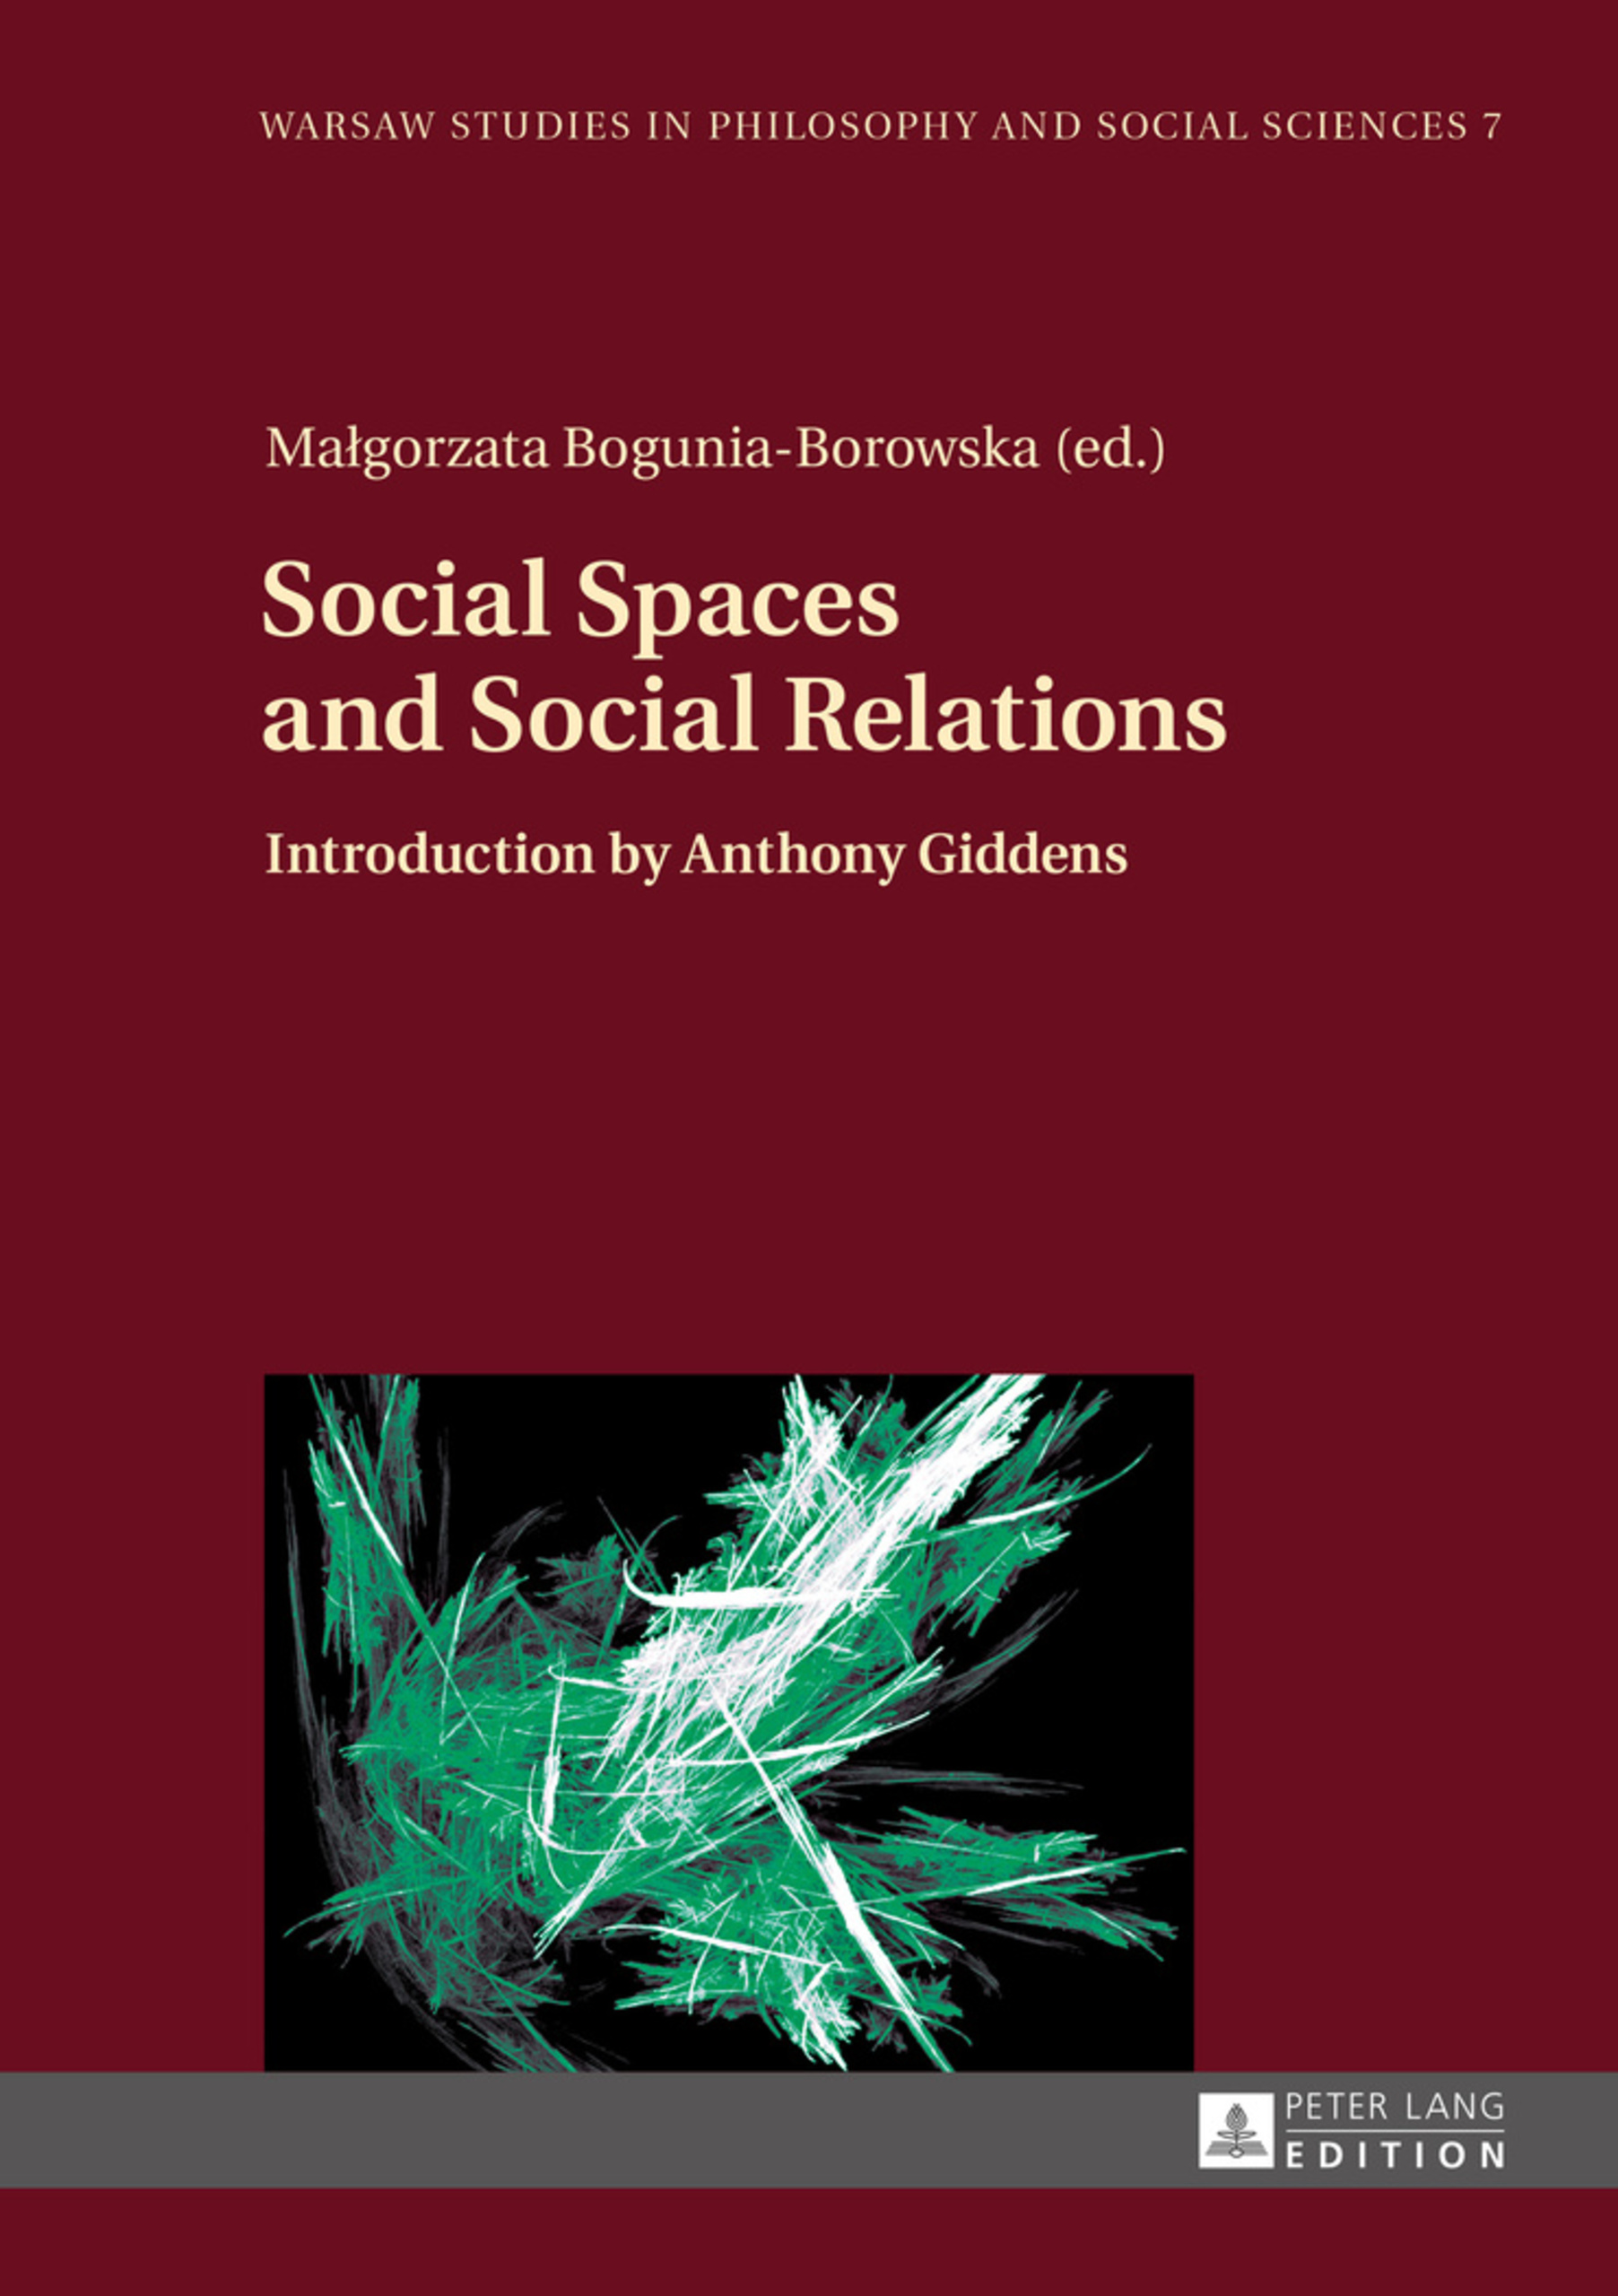 Title: Social Spaces and Social Relations